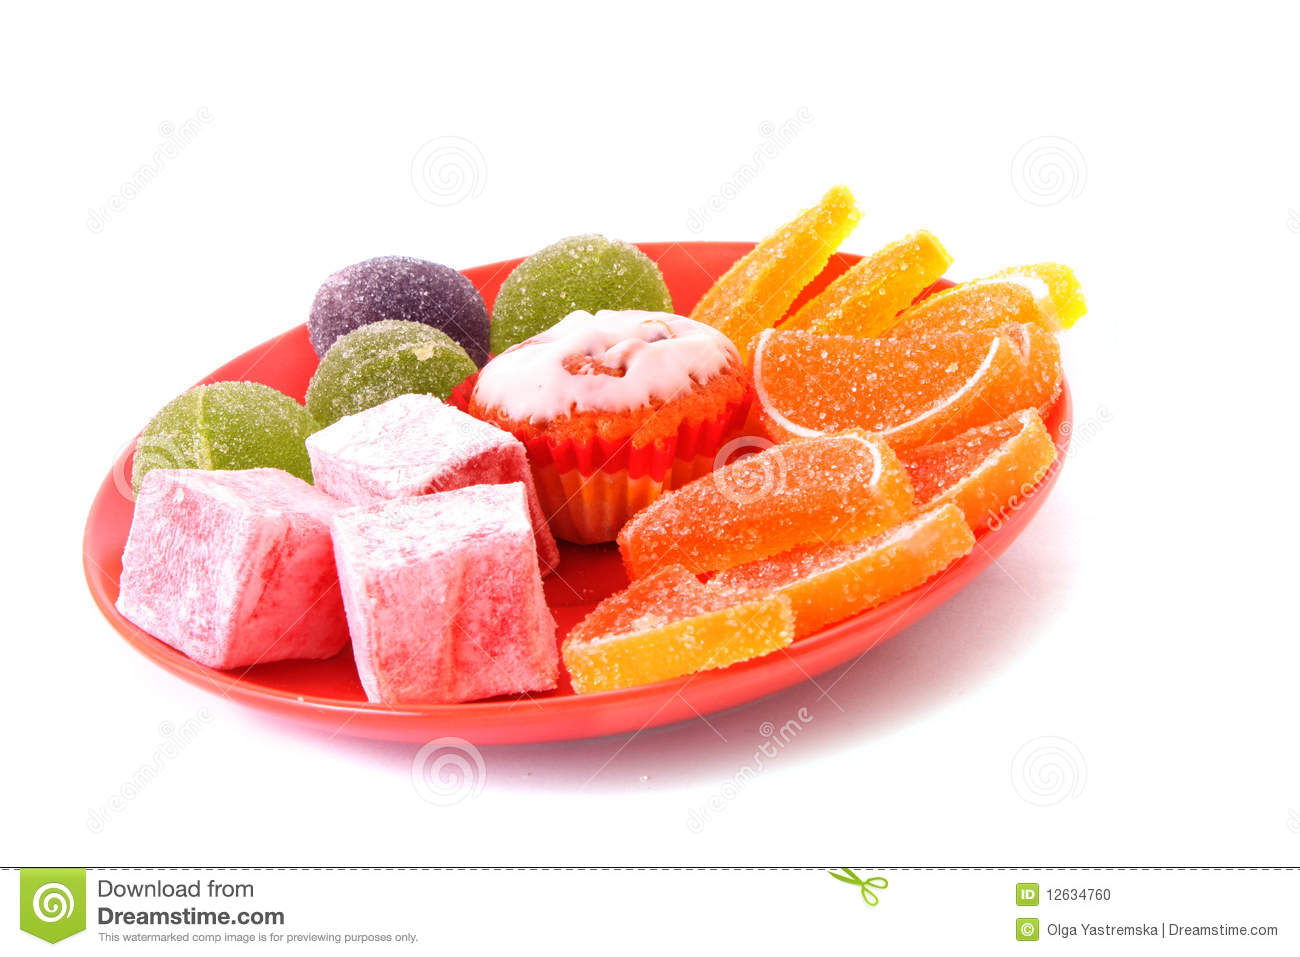 Fruit jelly cakes on plate isolated on the white.